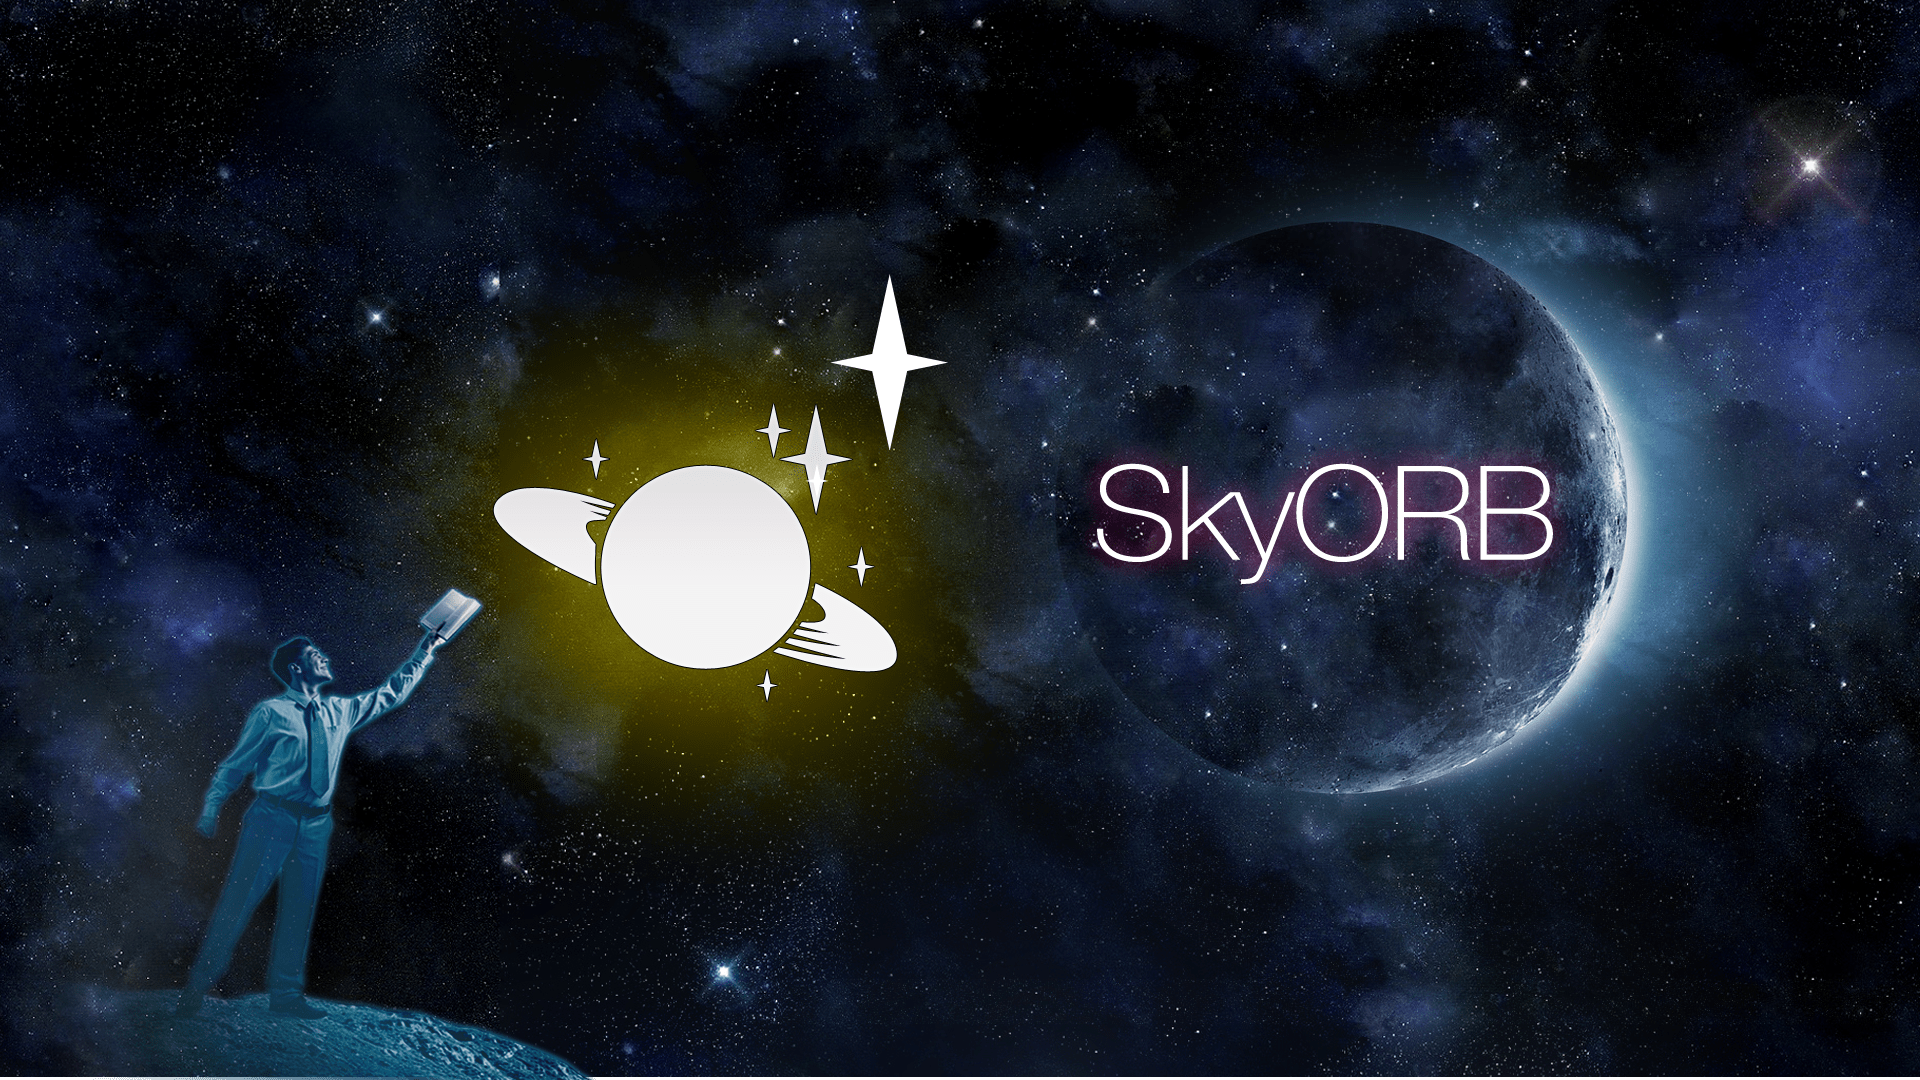 Buggy Board Moon Nuova Get Skyorb Astronomy For Everyone Microsoft Store